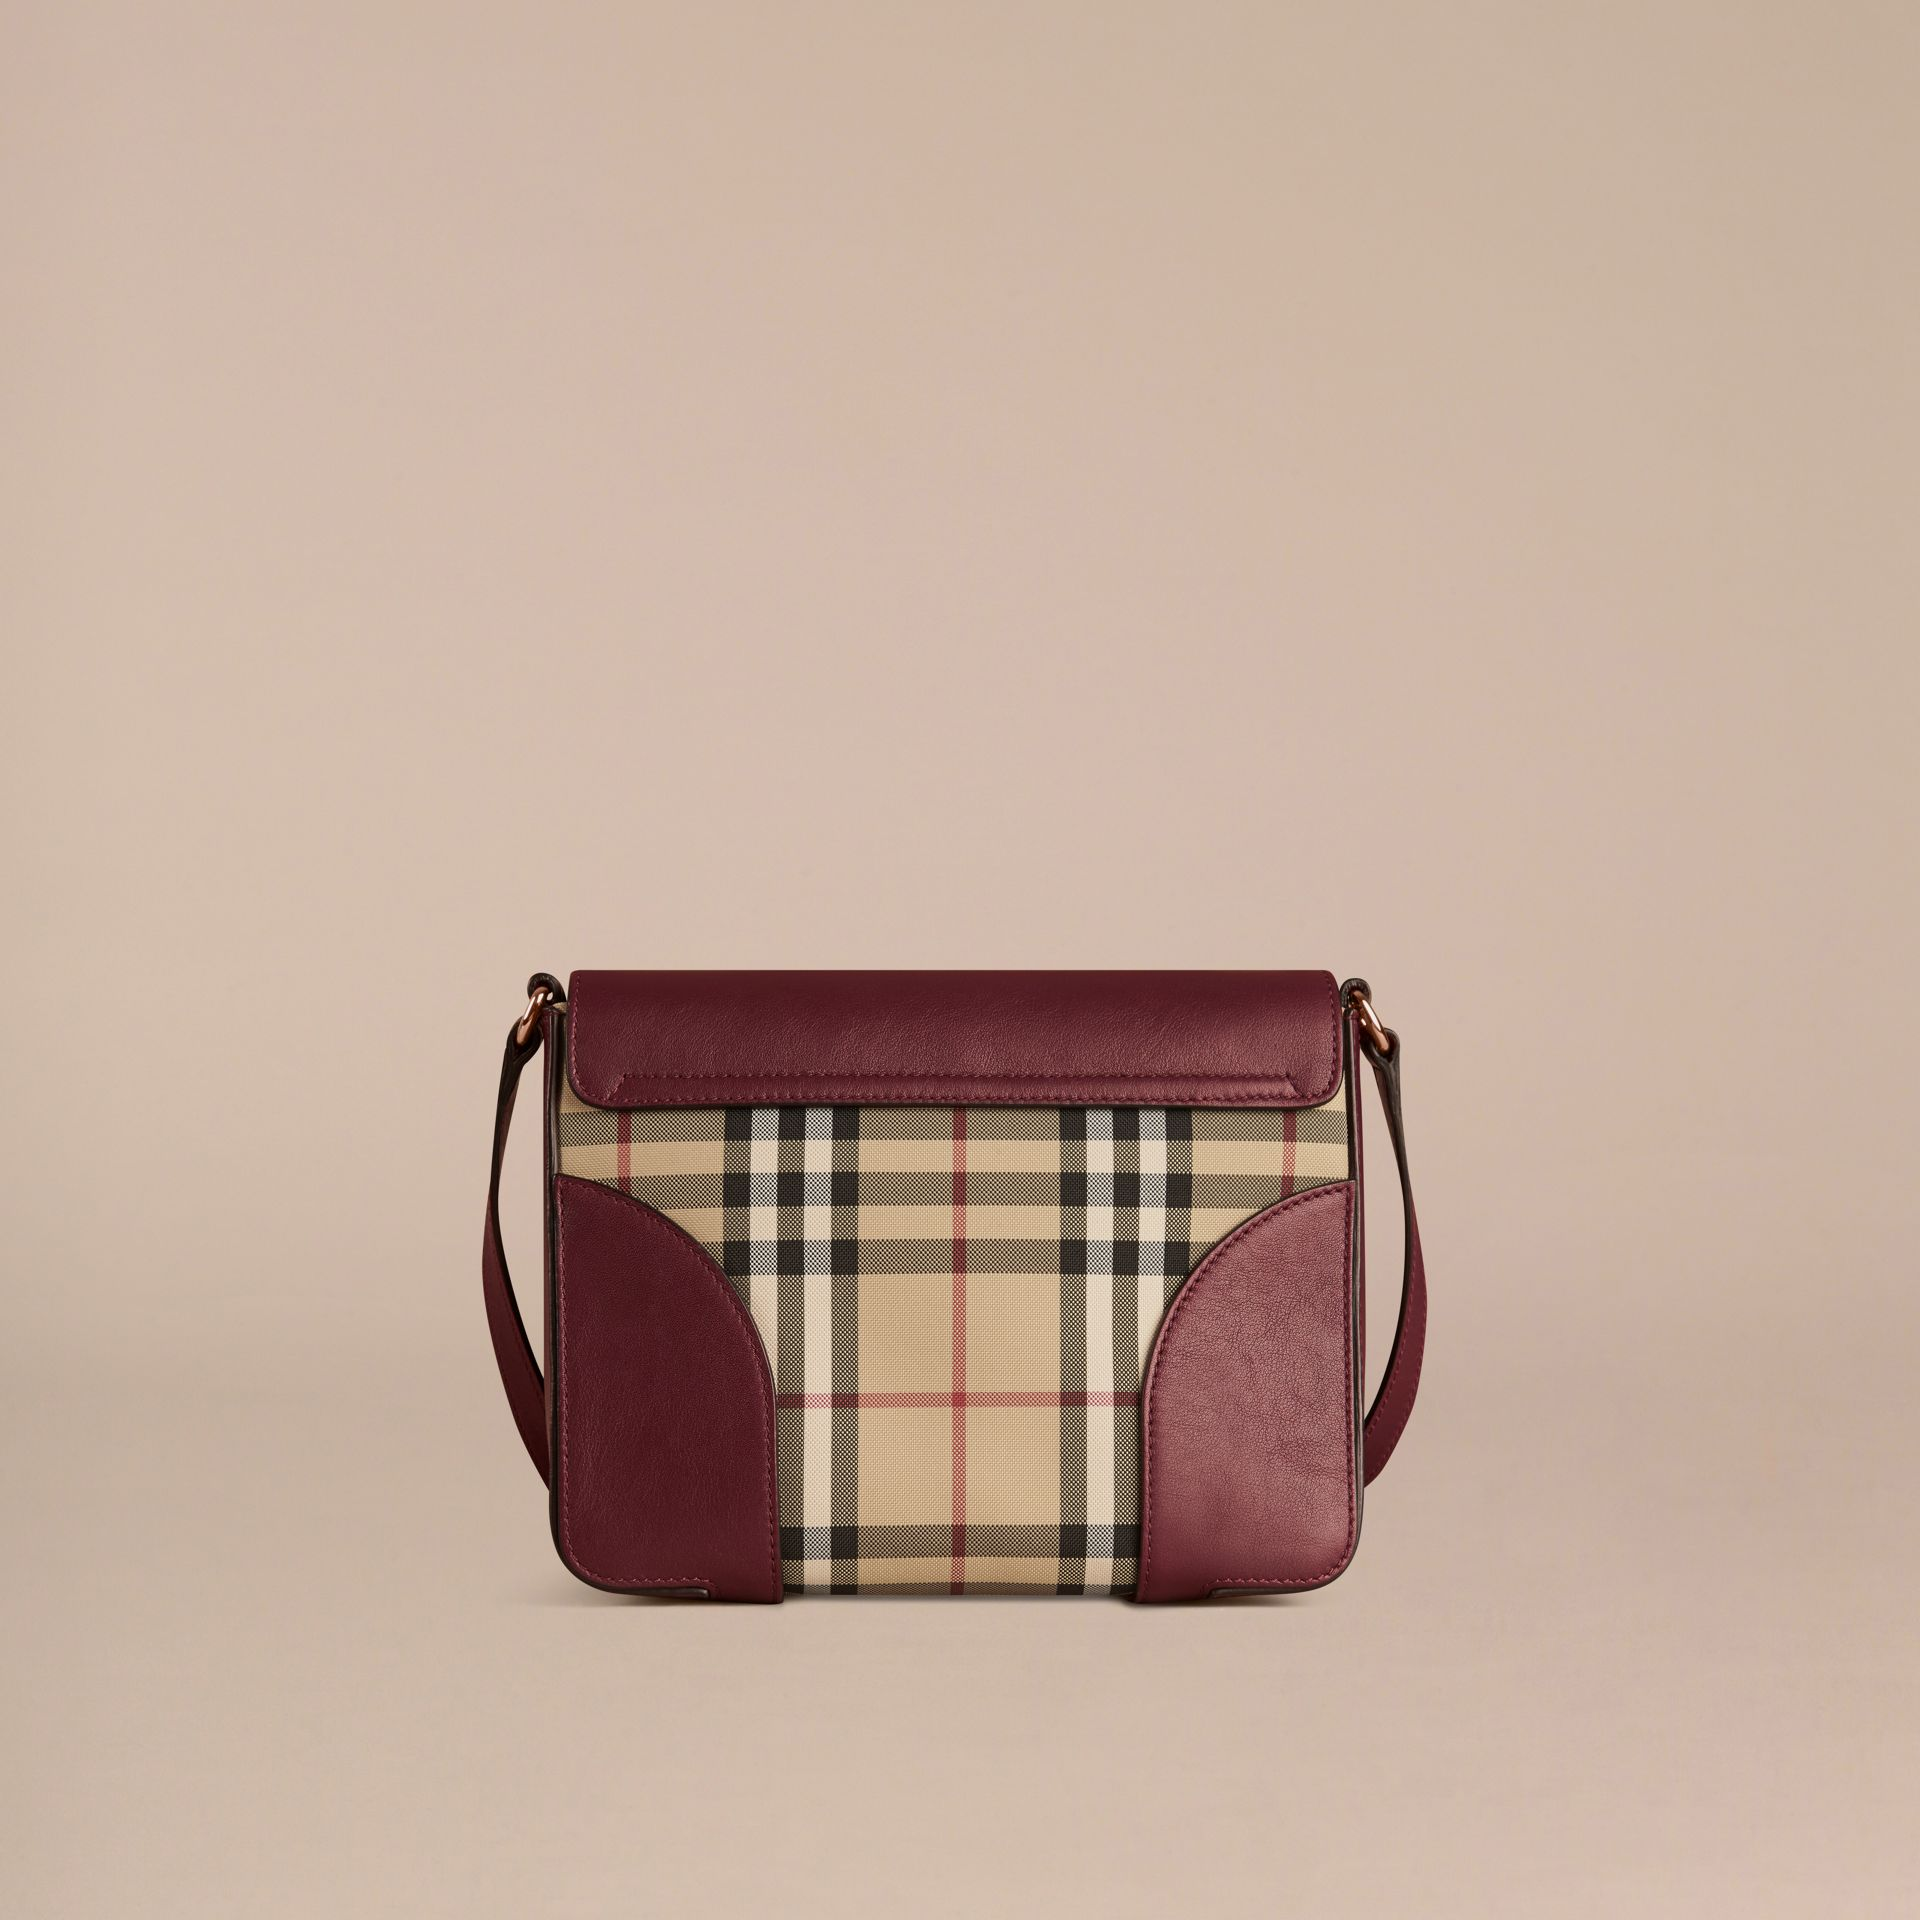 Honey/deep claret Small Horseferry Check and Leather Crossbody Bag Honey/deep Claret - gallery image 4